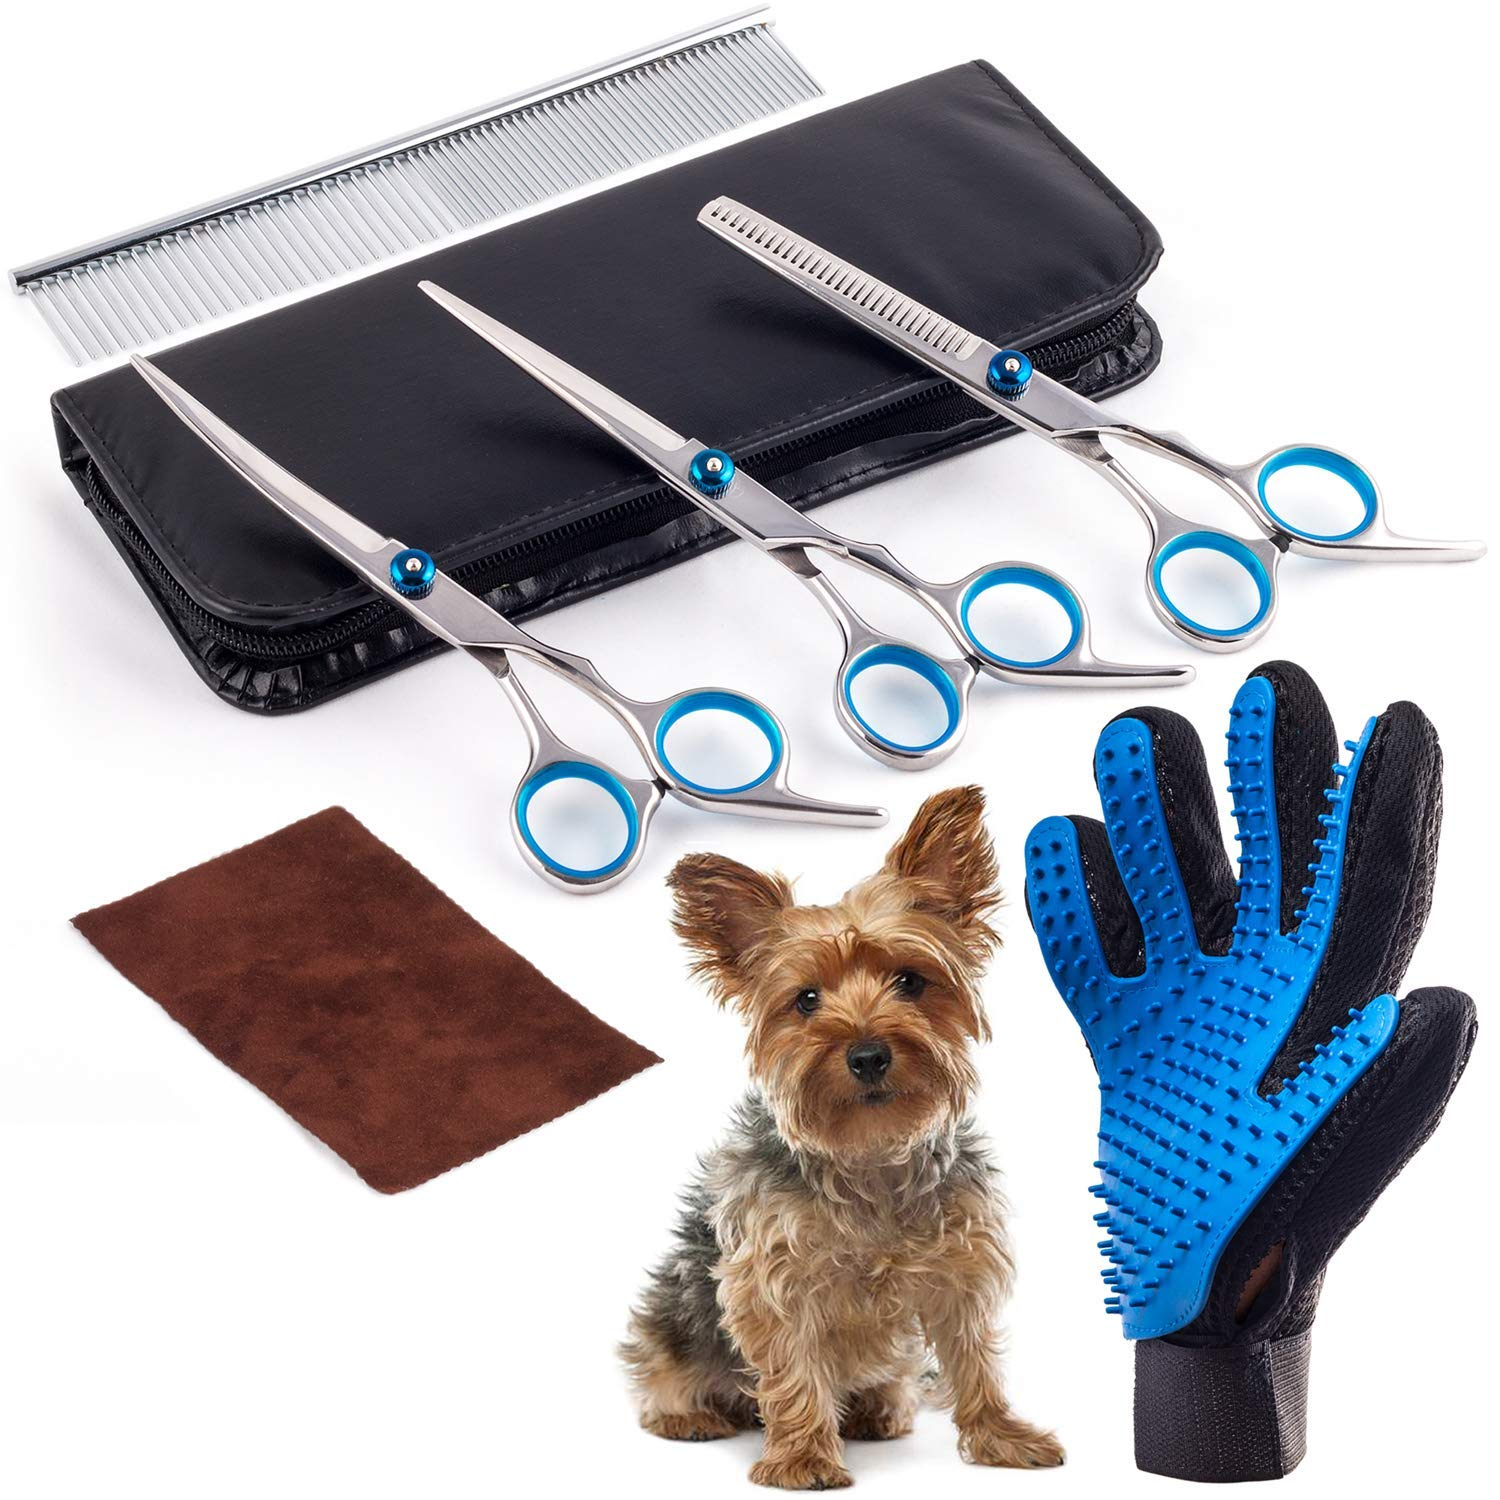 Dog Grooming Scissors Kit - Pet Grooming Glove Included, Grooming Scissors for Dogs Face, Nose, Ears and Grooming Glove for Dogs, Cats and More Pets